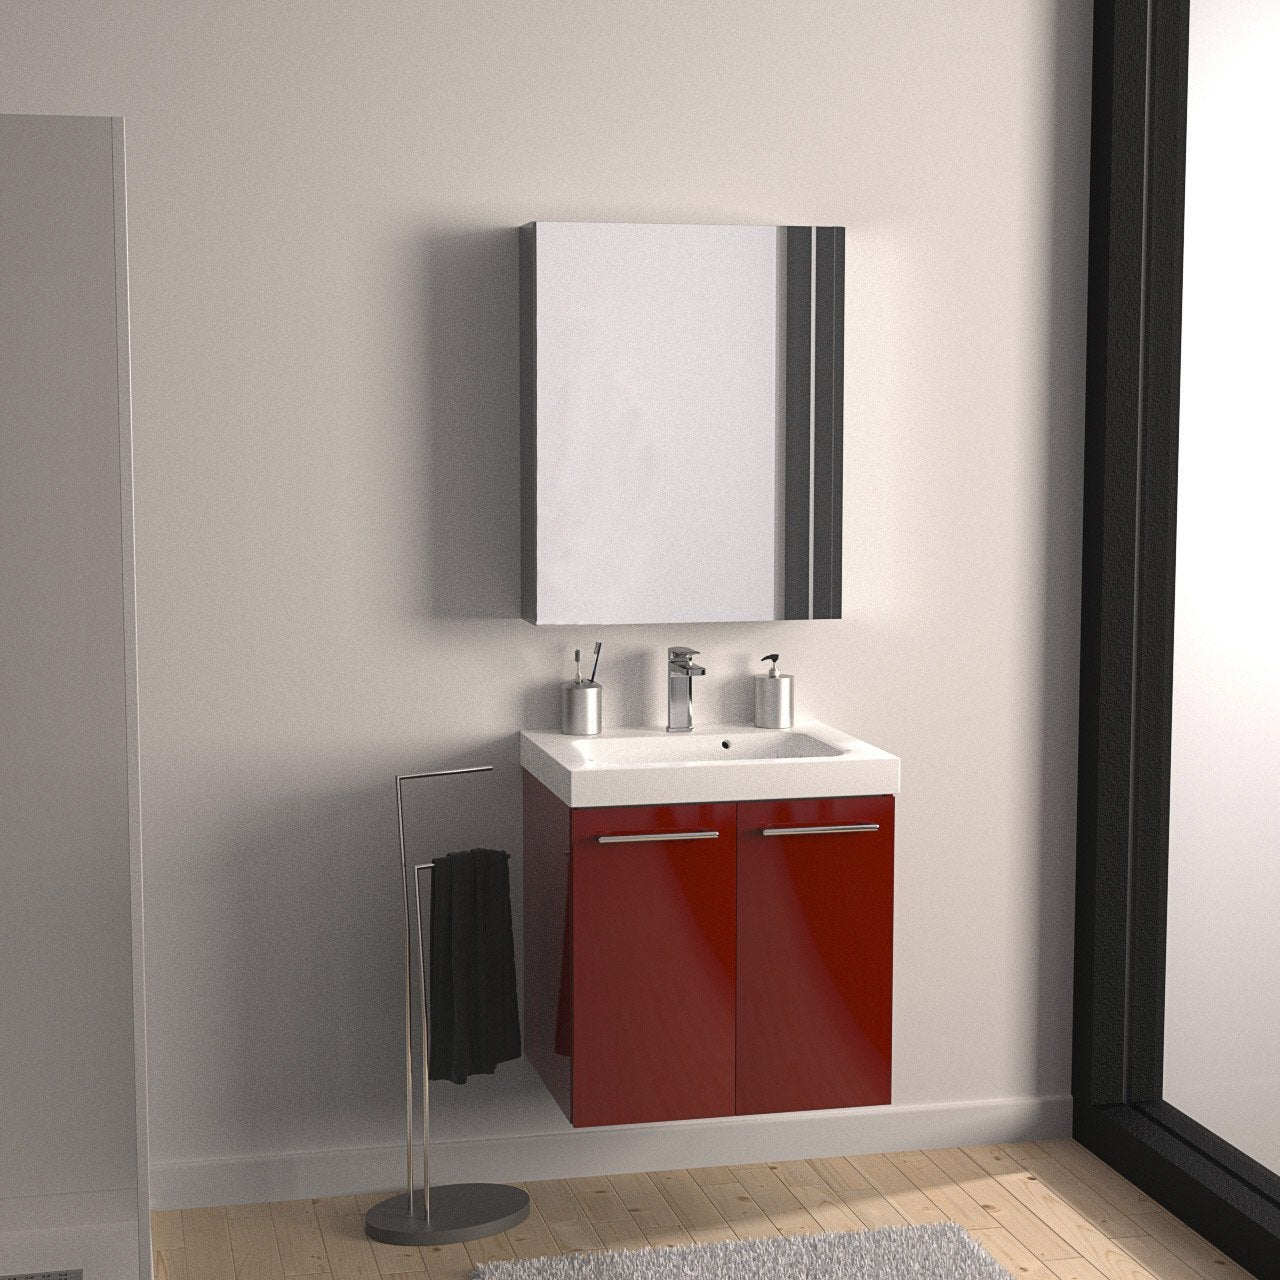 Meuble sous vasque x x cm rouge sensea for Meuble hotte leroy merlin